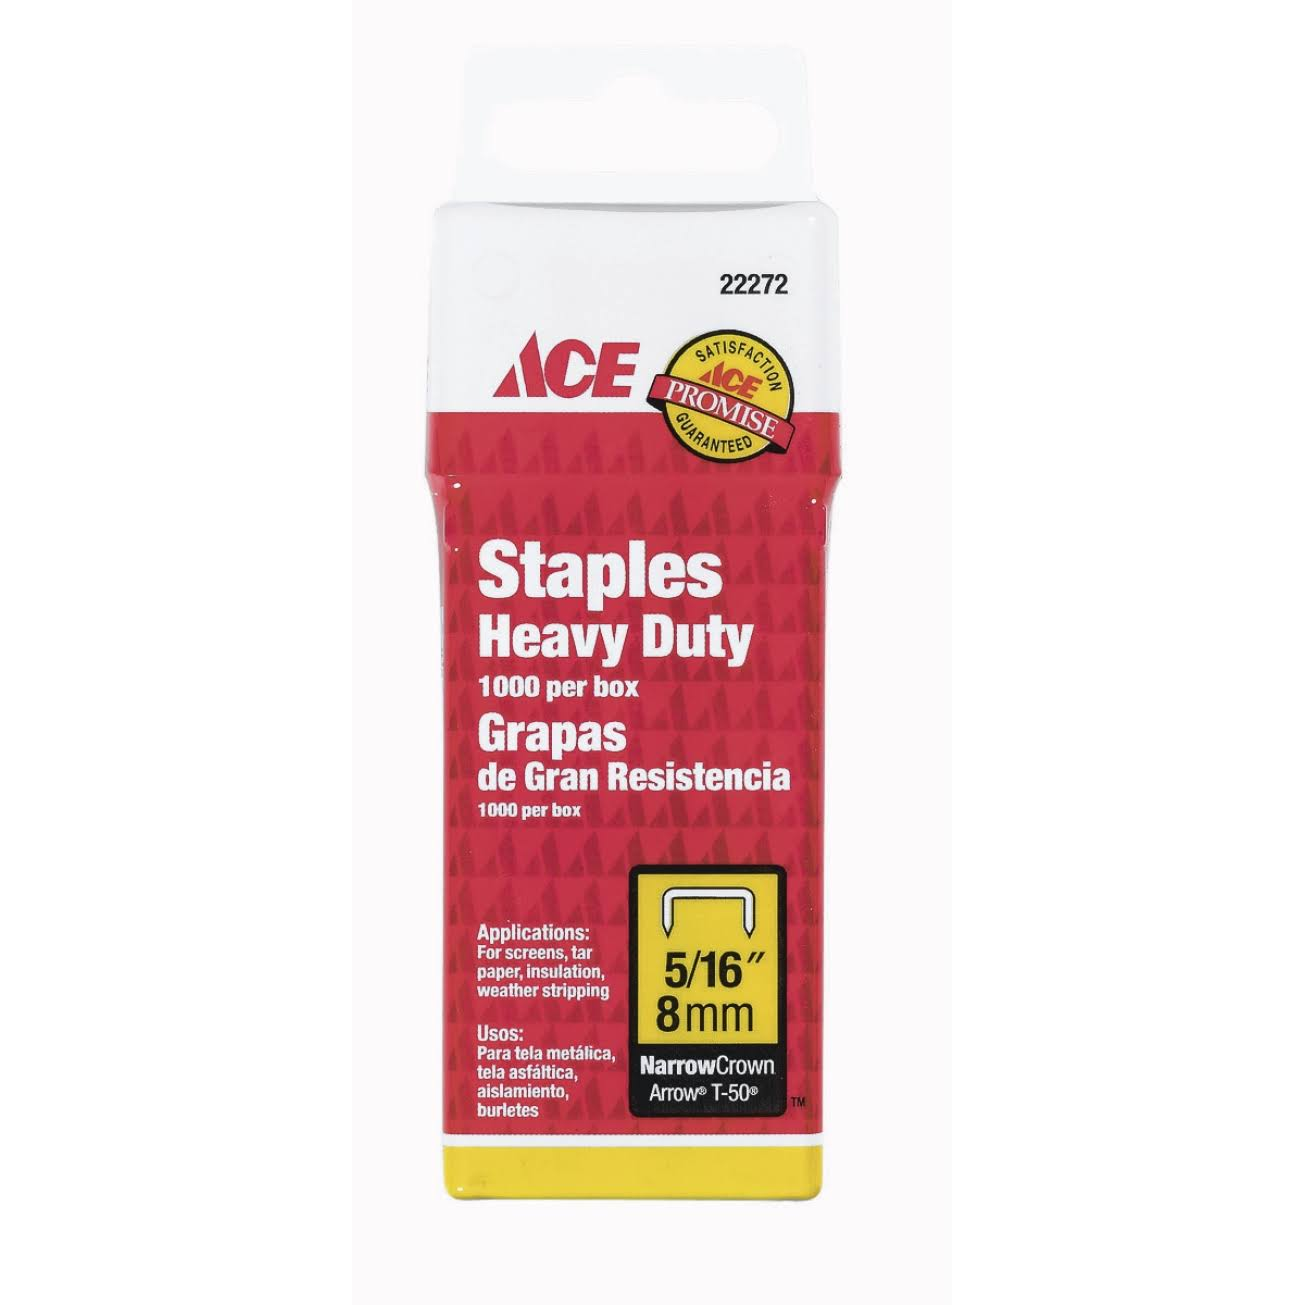 Ace Heavy Duty Staples - 6mm, x1000